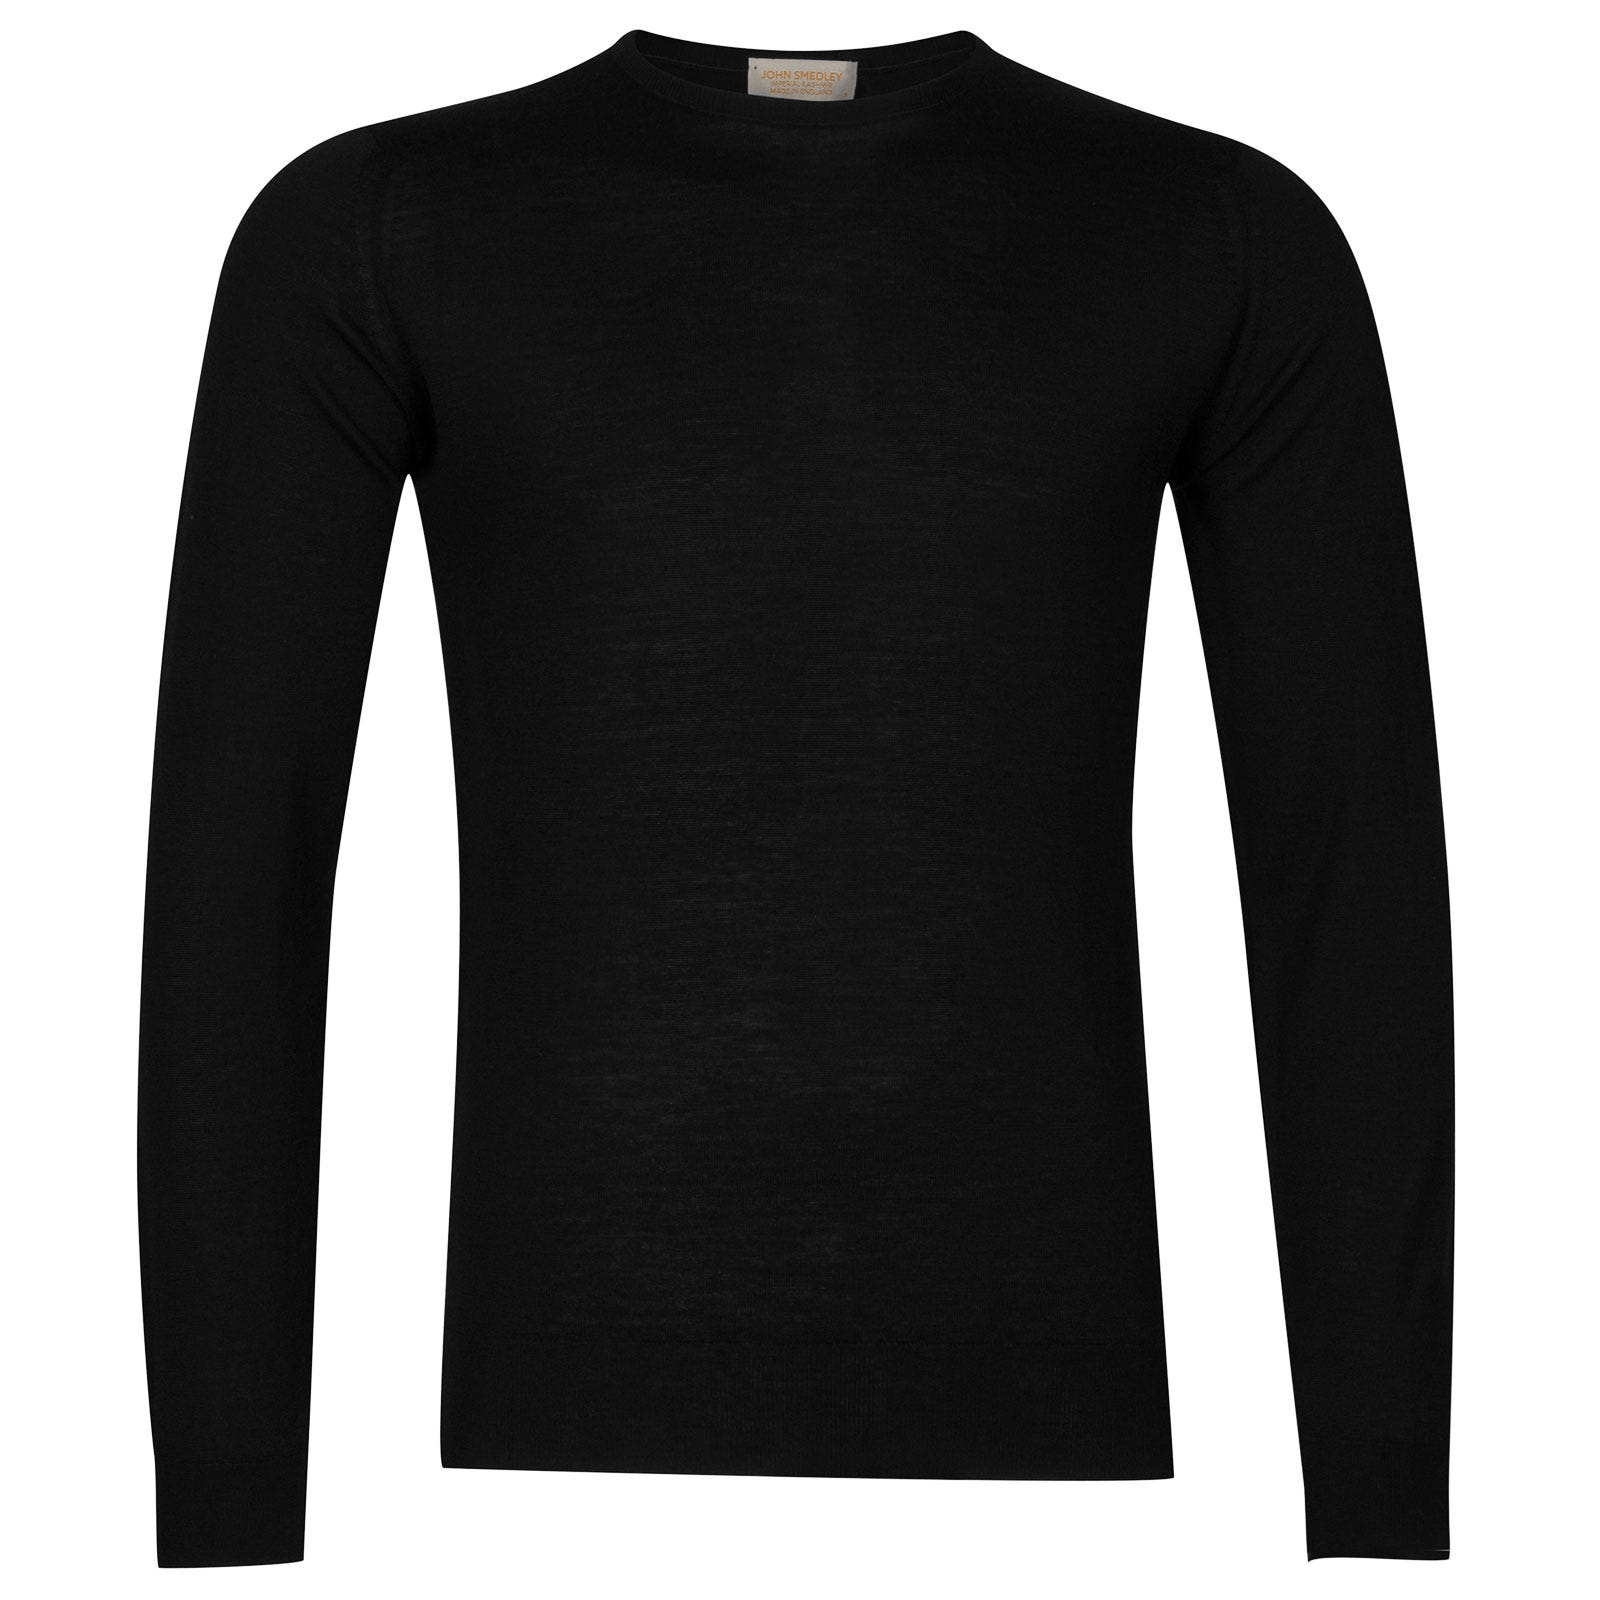 John Smedley sherman Merino Wool and Cashmere Pullover in Black-XL